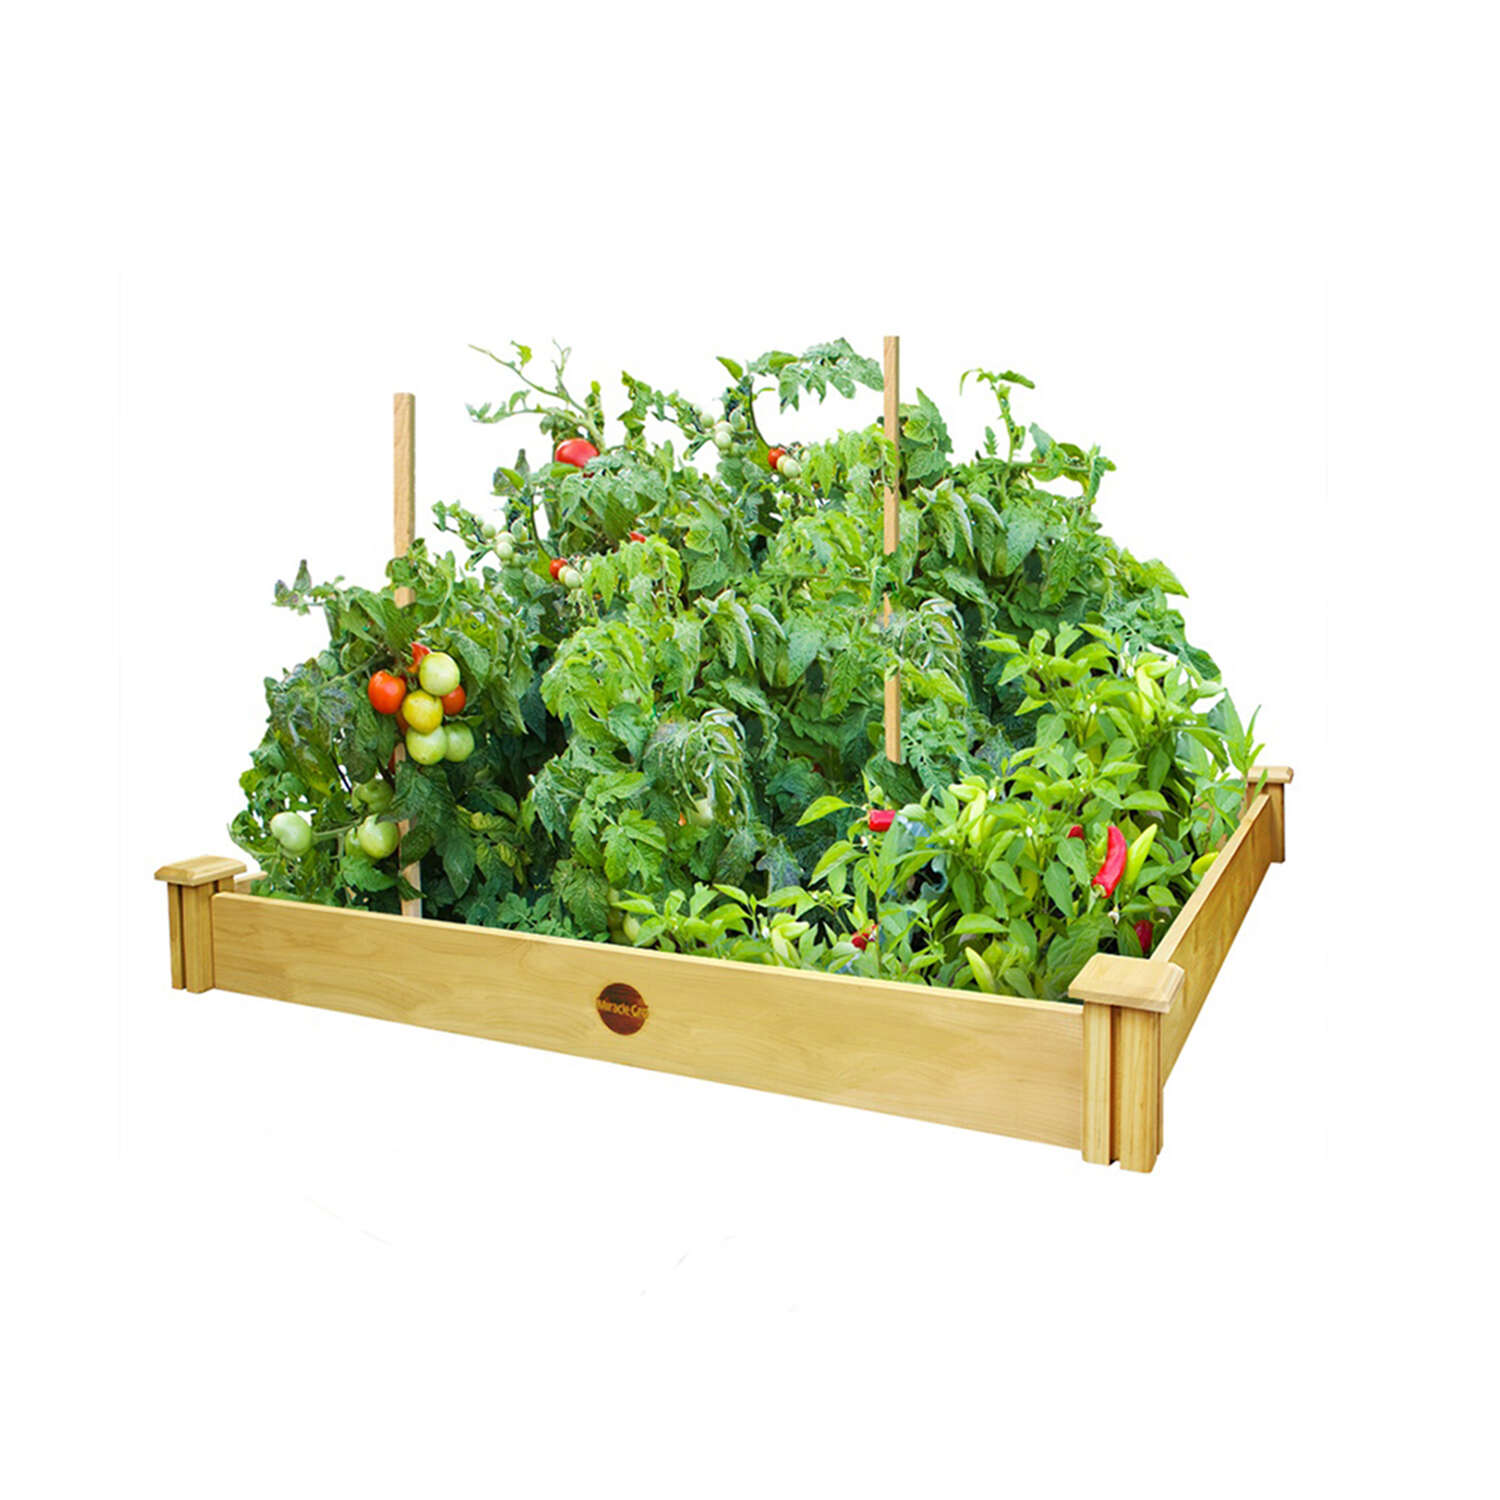 Miracle-Gro  5.5 in. H x 48 in. W Cedar  Elevated Garden Bed Kit  Brown